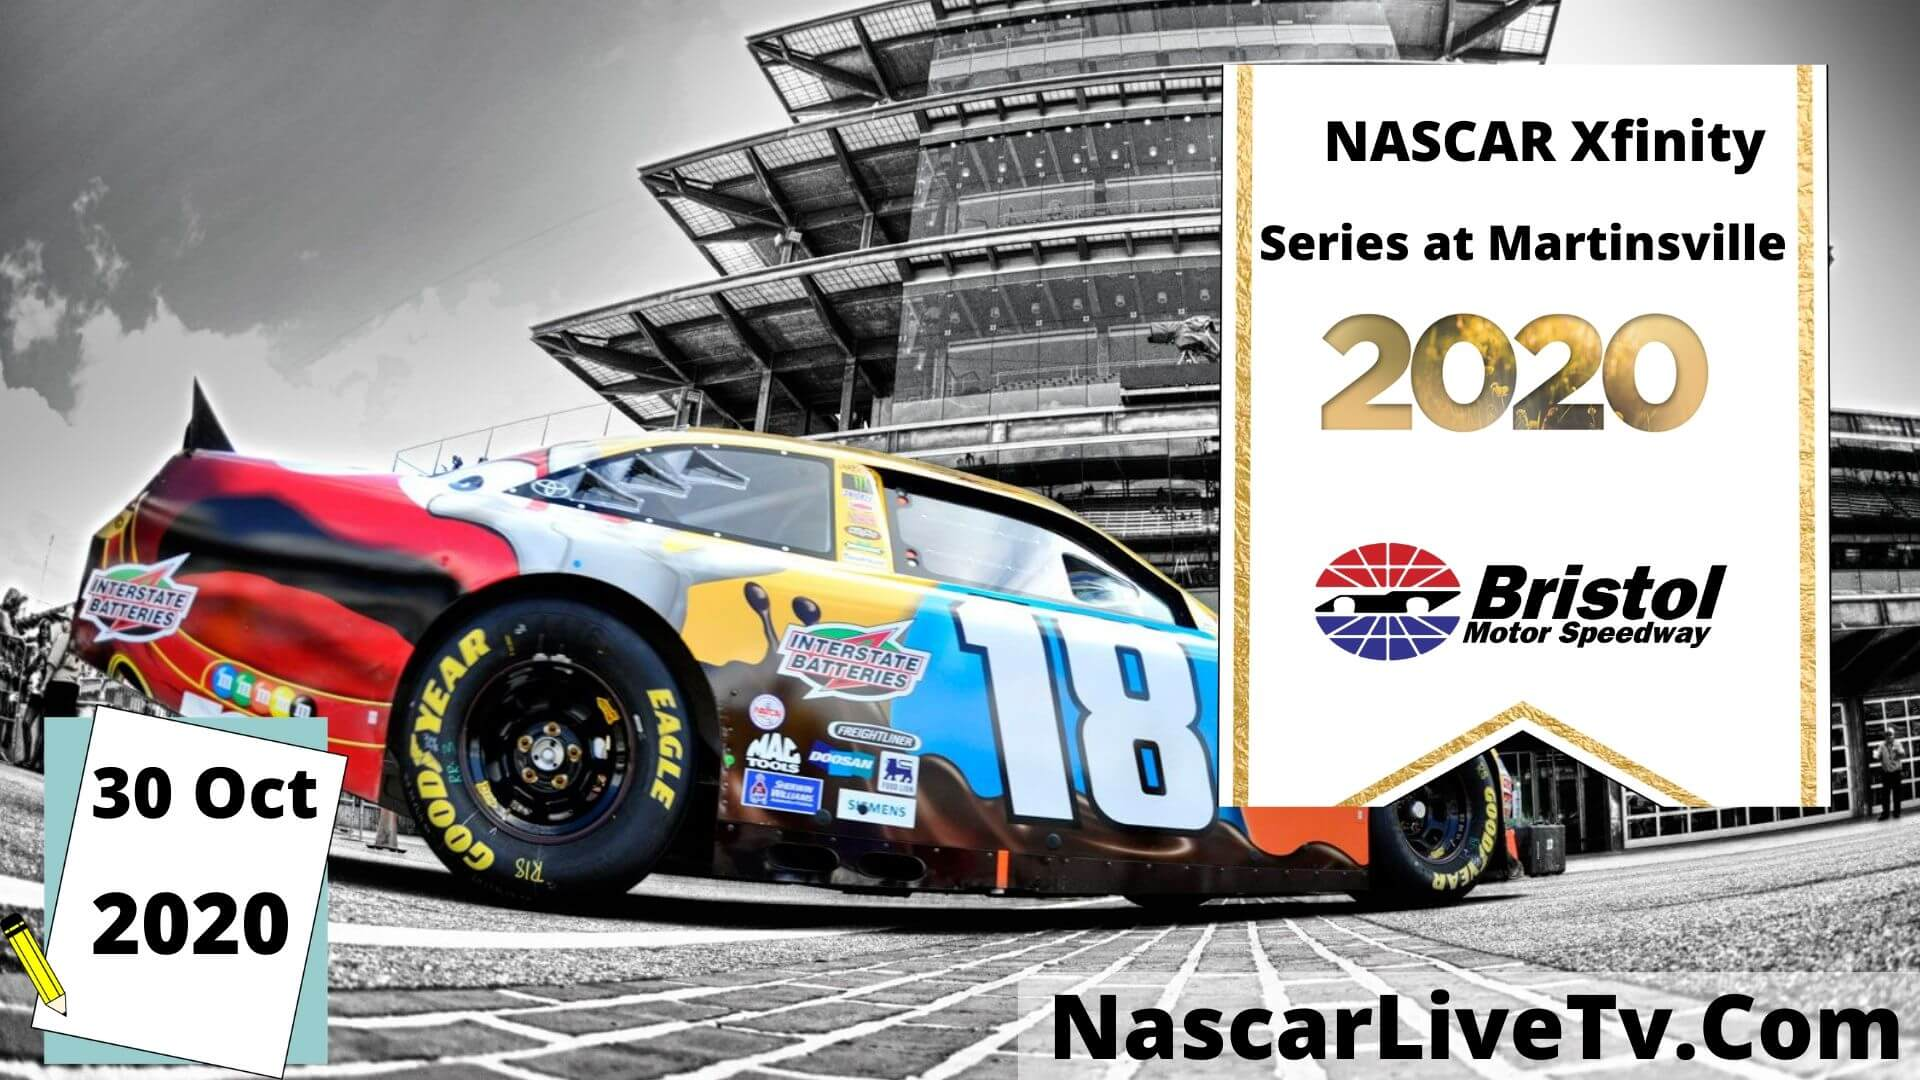 NASCAR Xfinity Series at Martinsville Qualifying 1 Live Stream 2020